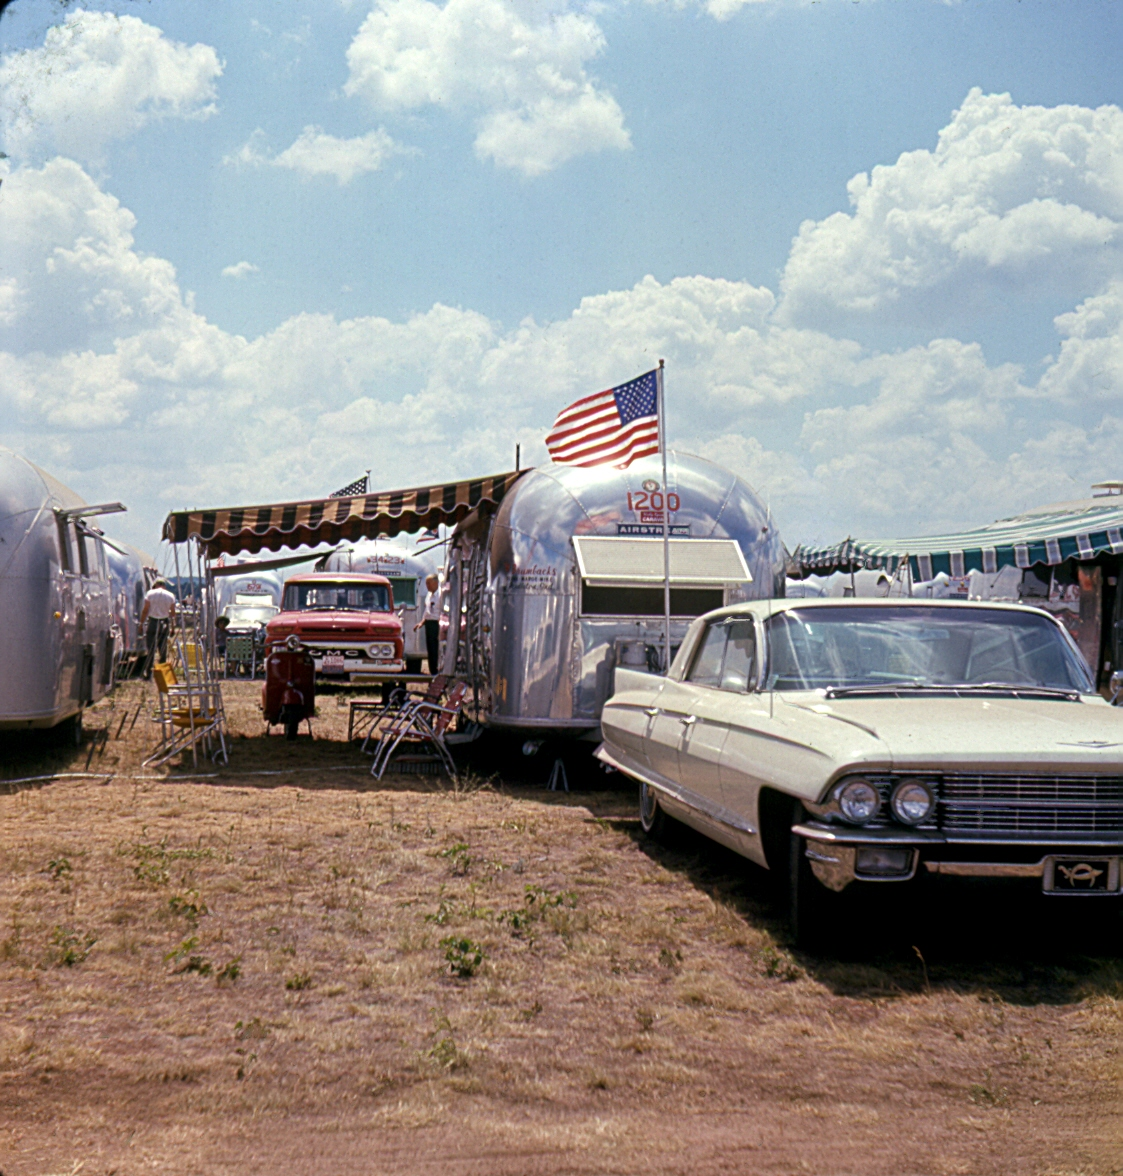 Click image for larger version  Name:64 Caddy.jpg Views:186 Size:704.3 KB ID:110169